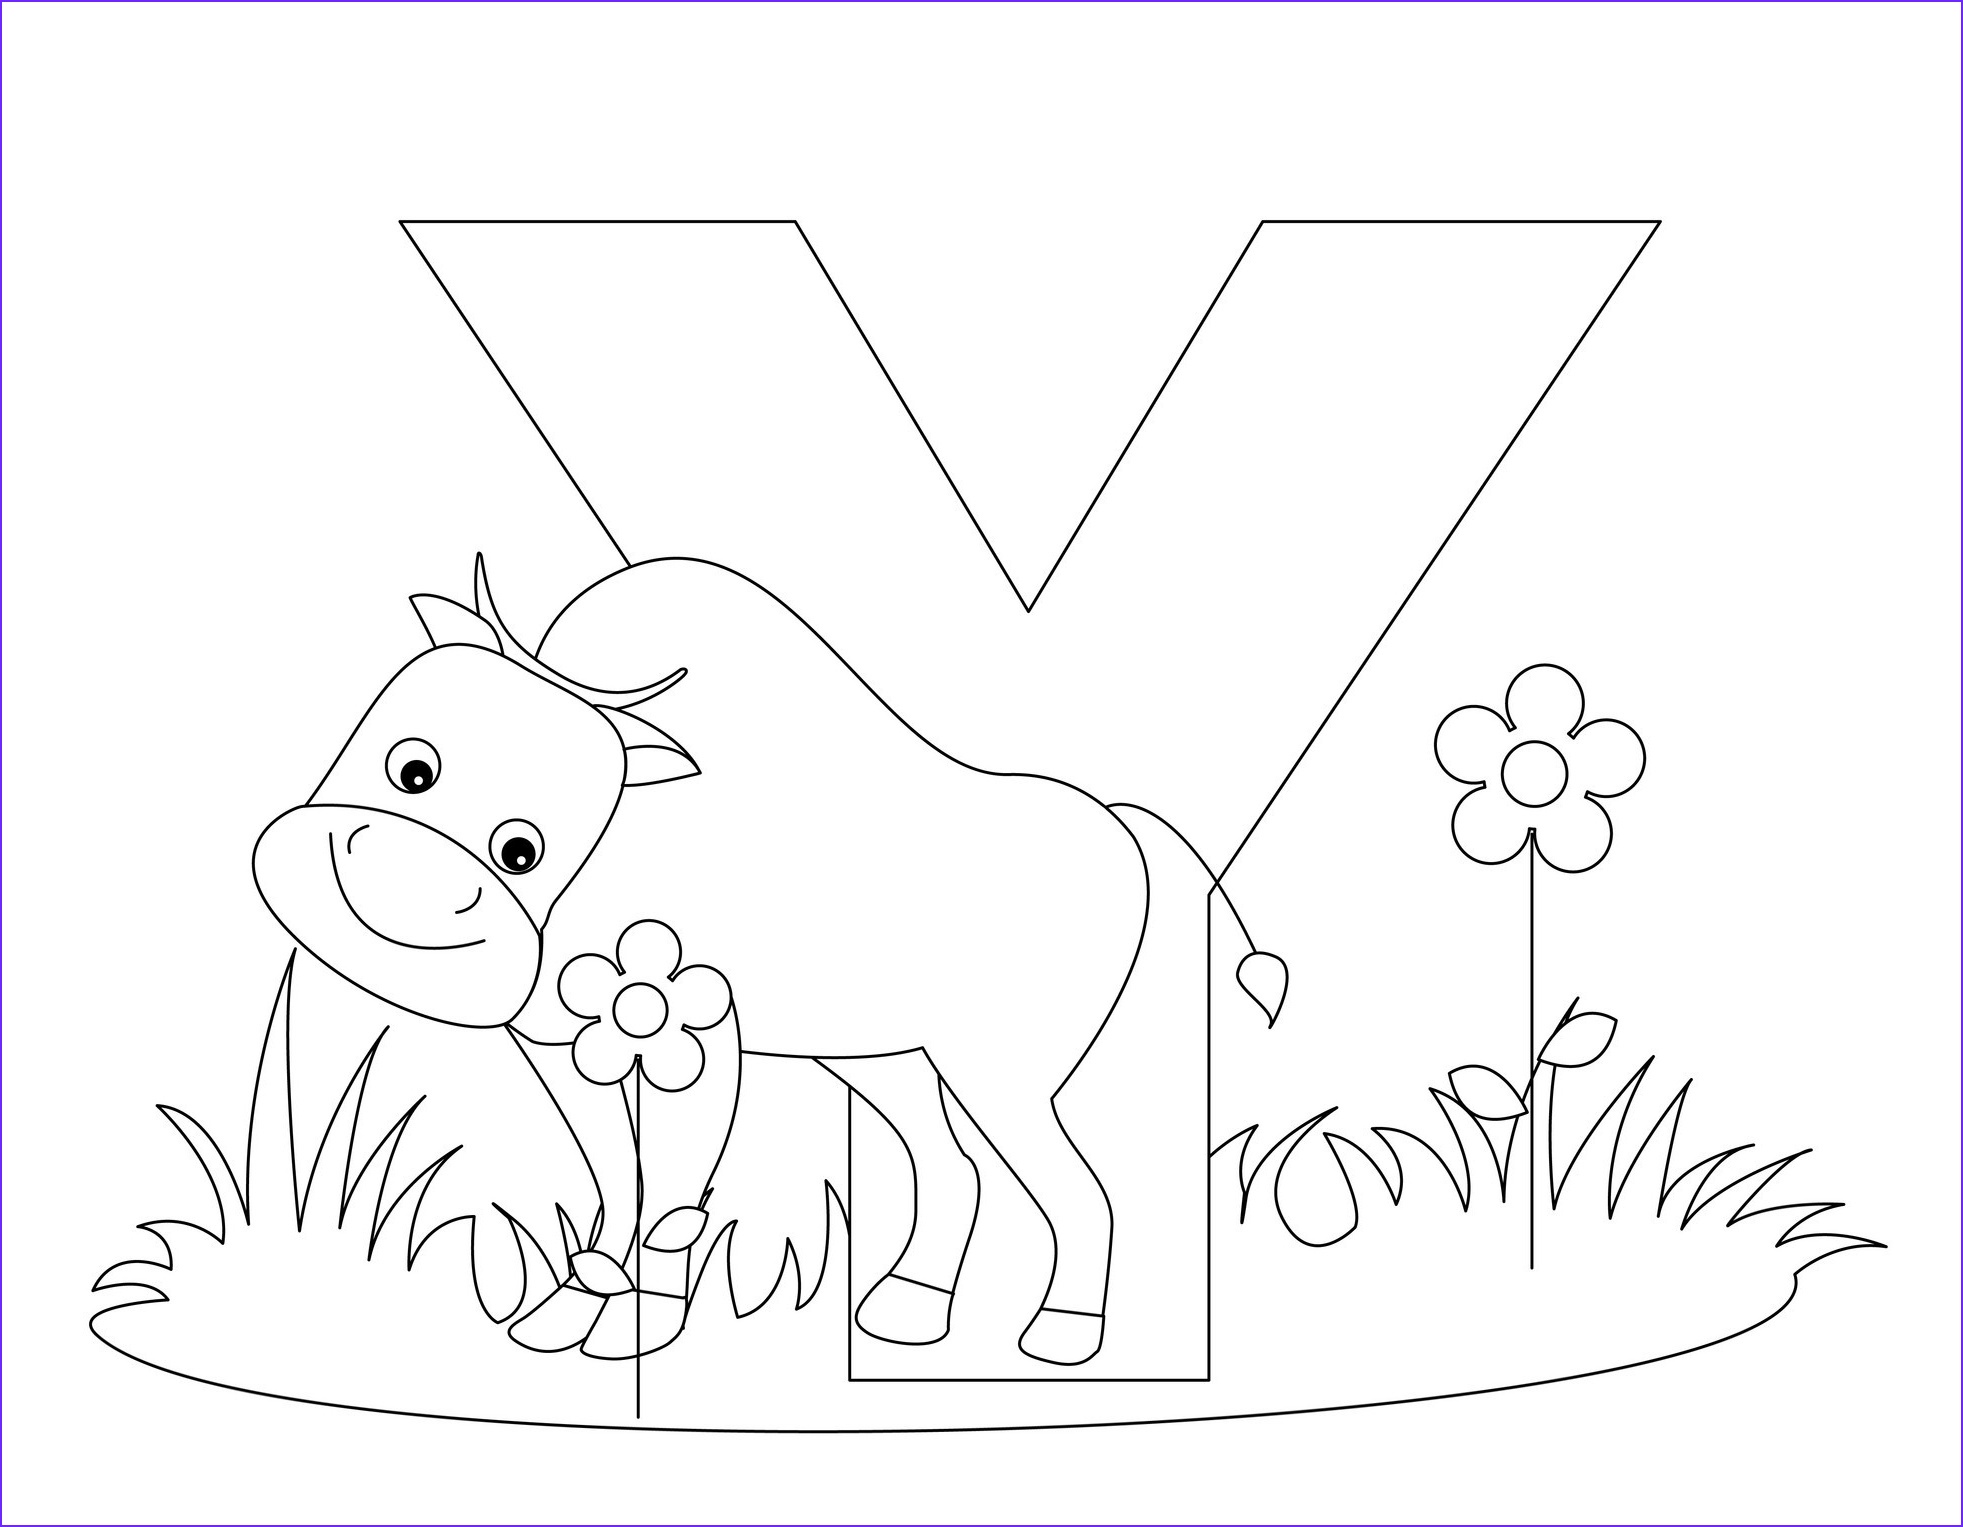 Alphabet Coloring Books Inspirational Gallery Free Printable Alphabet Coloring Pages for Kids Best